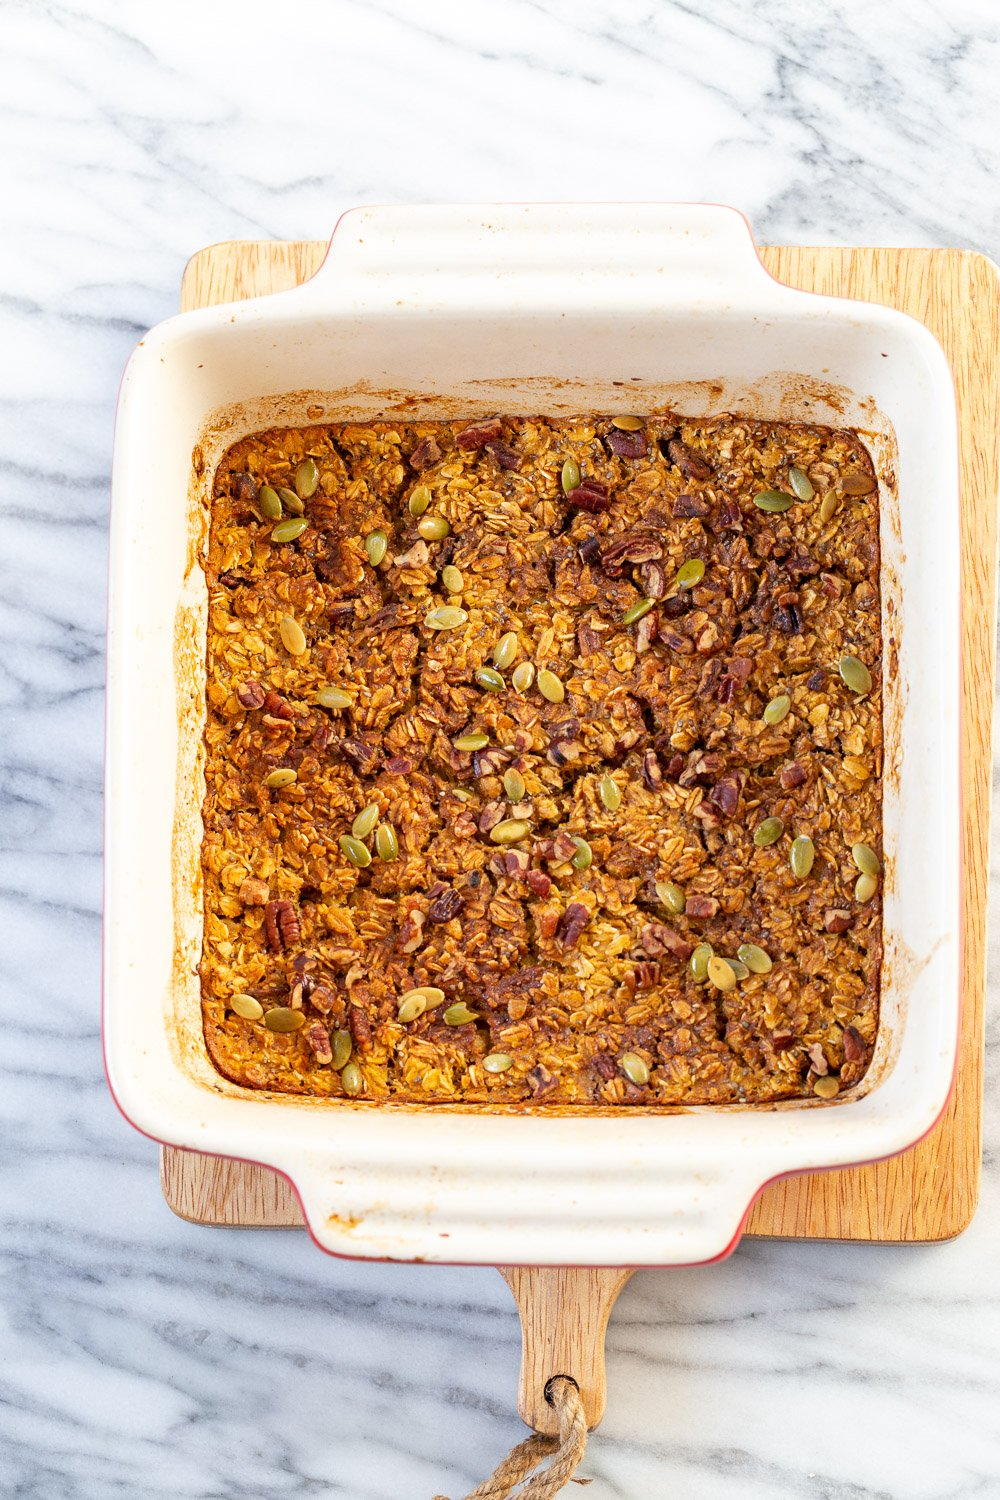 Our Vegan Pumpkin Baked Oatmeal in a Baking dish